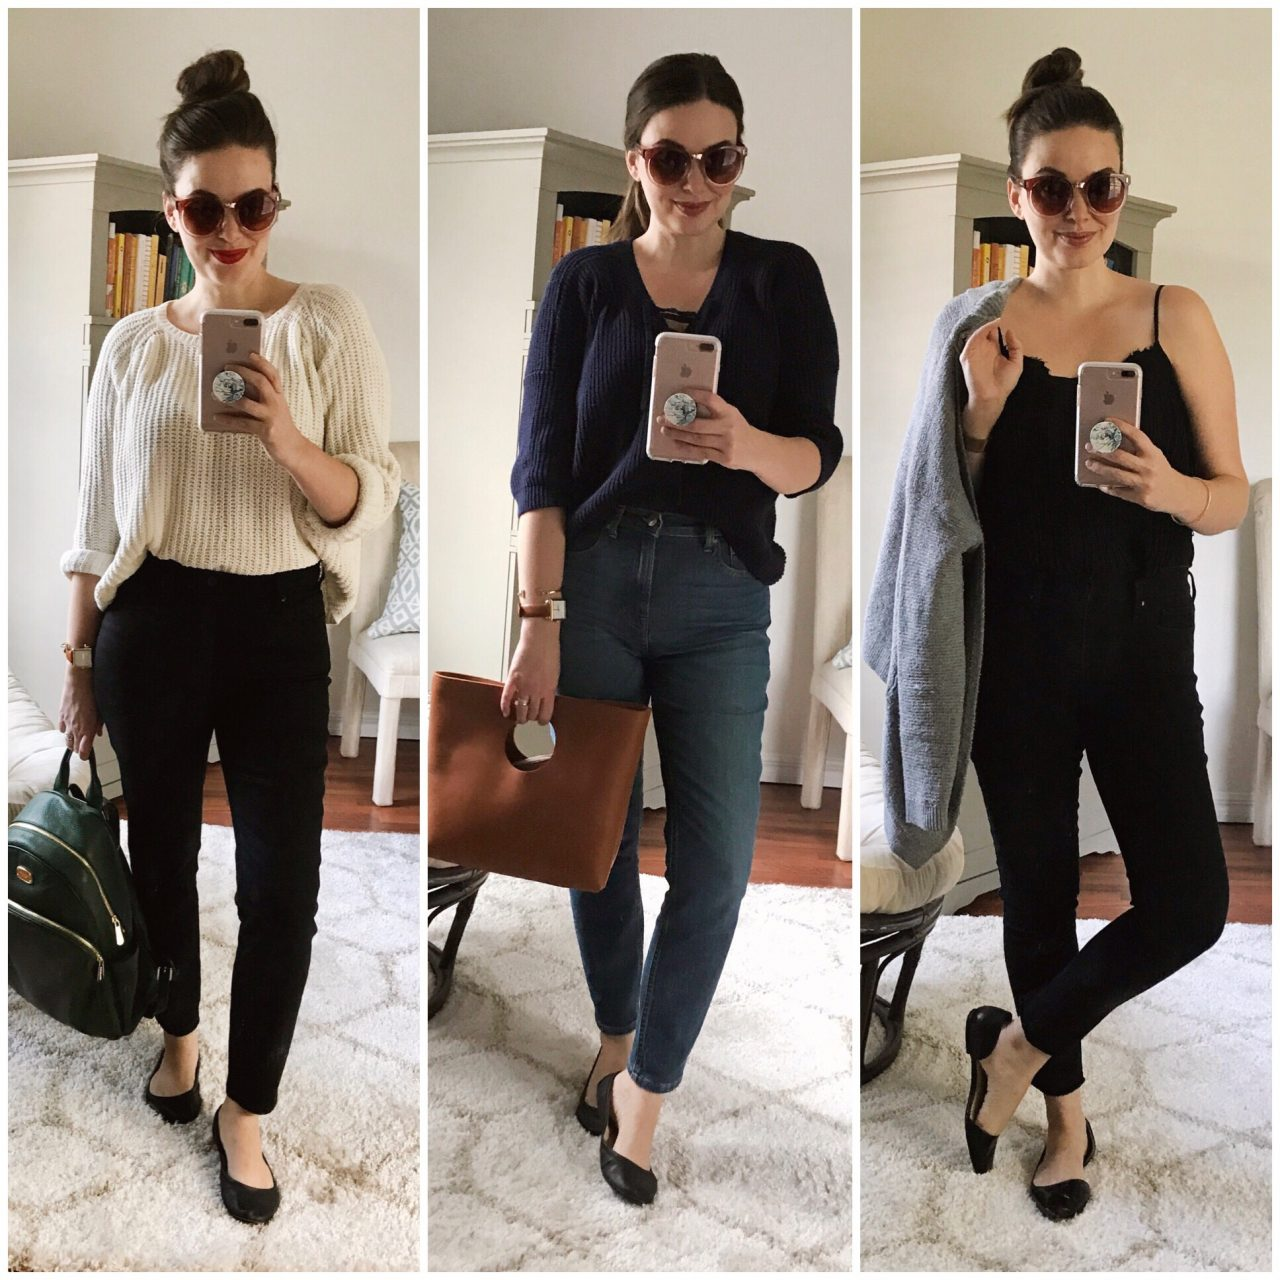 women's fashion, women's outfit ideas, capsule wardrobe, outfit blogger